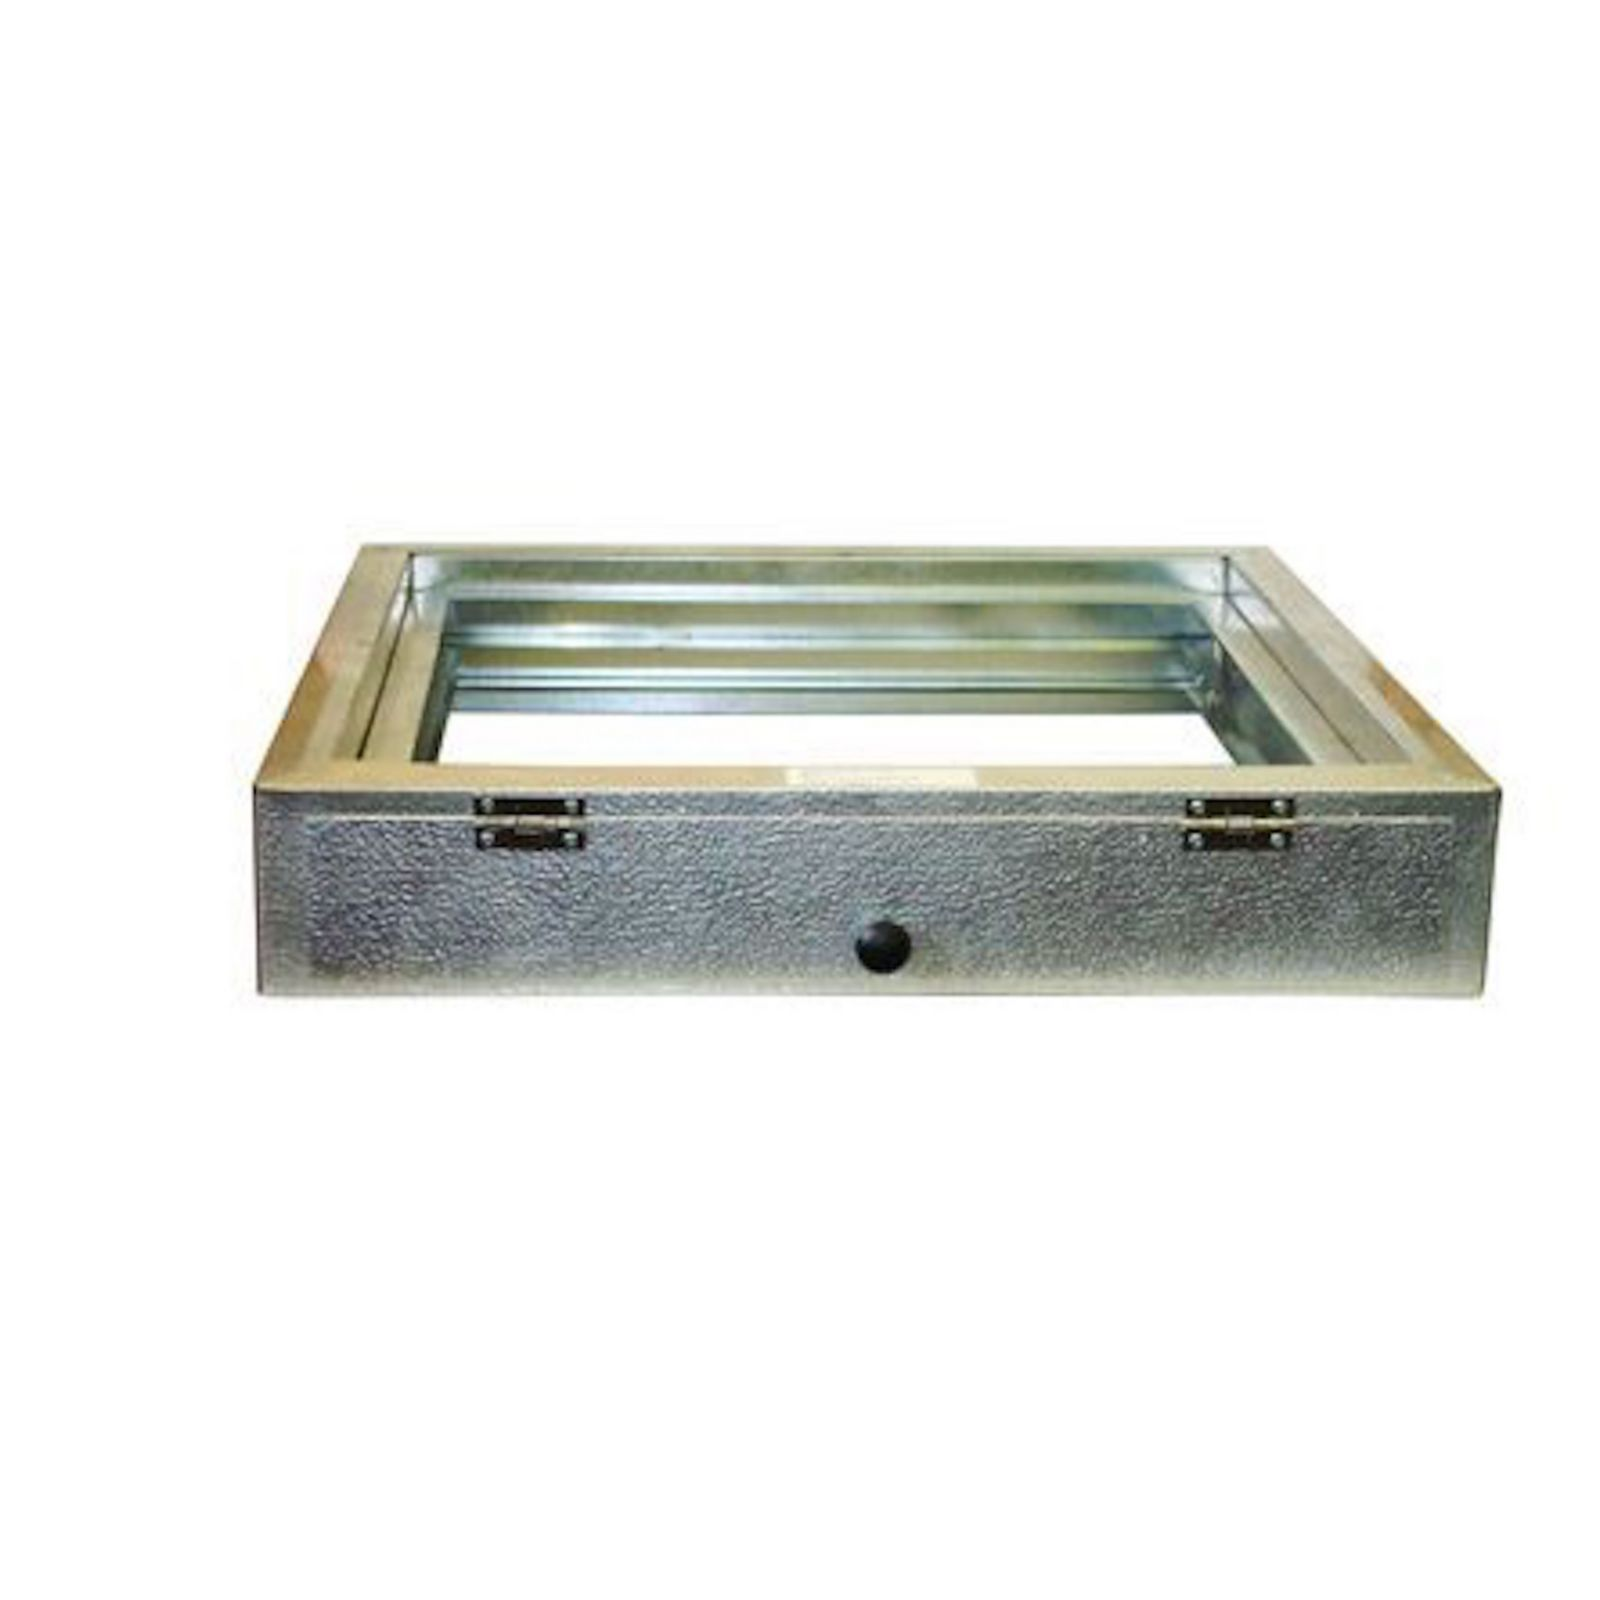 "The Metal Shop 433-239 - 2"" Filter Housing, 18 1/2"" X 22"" For Filter 16"" X 20"""